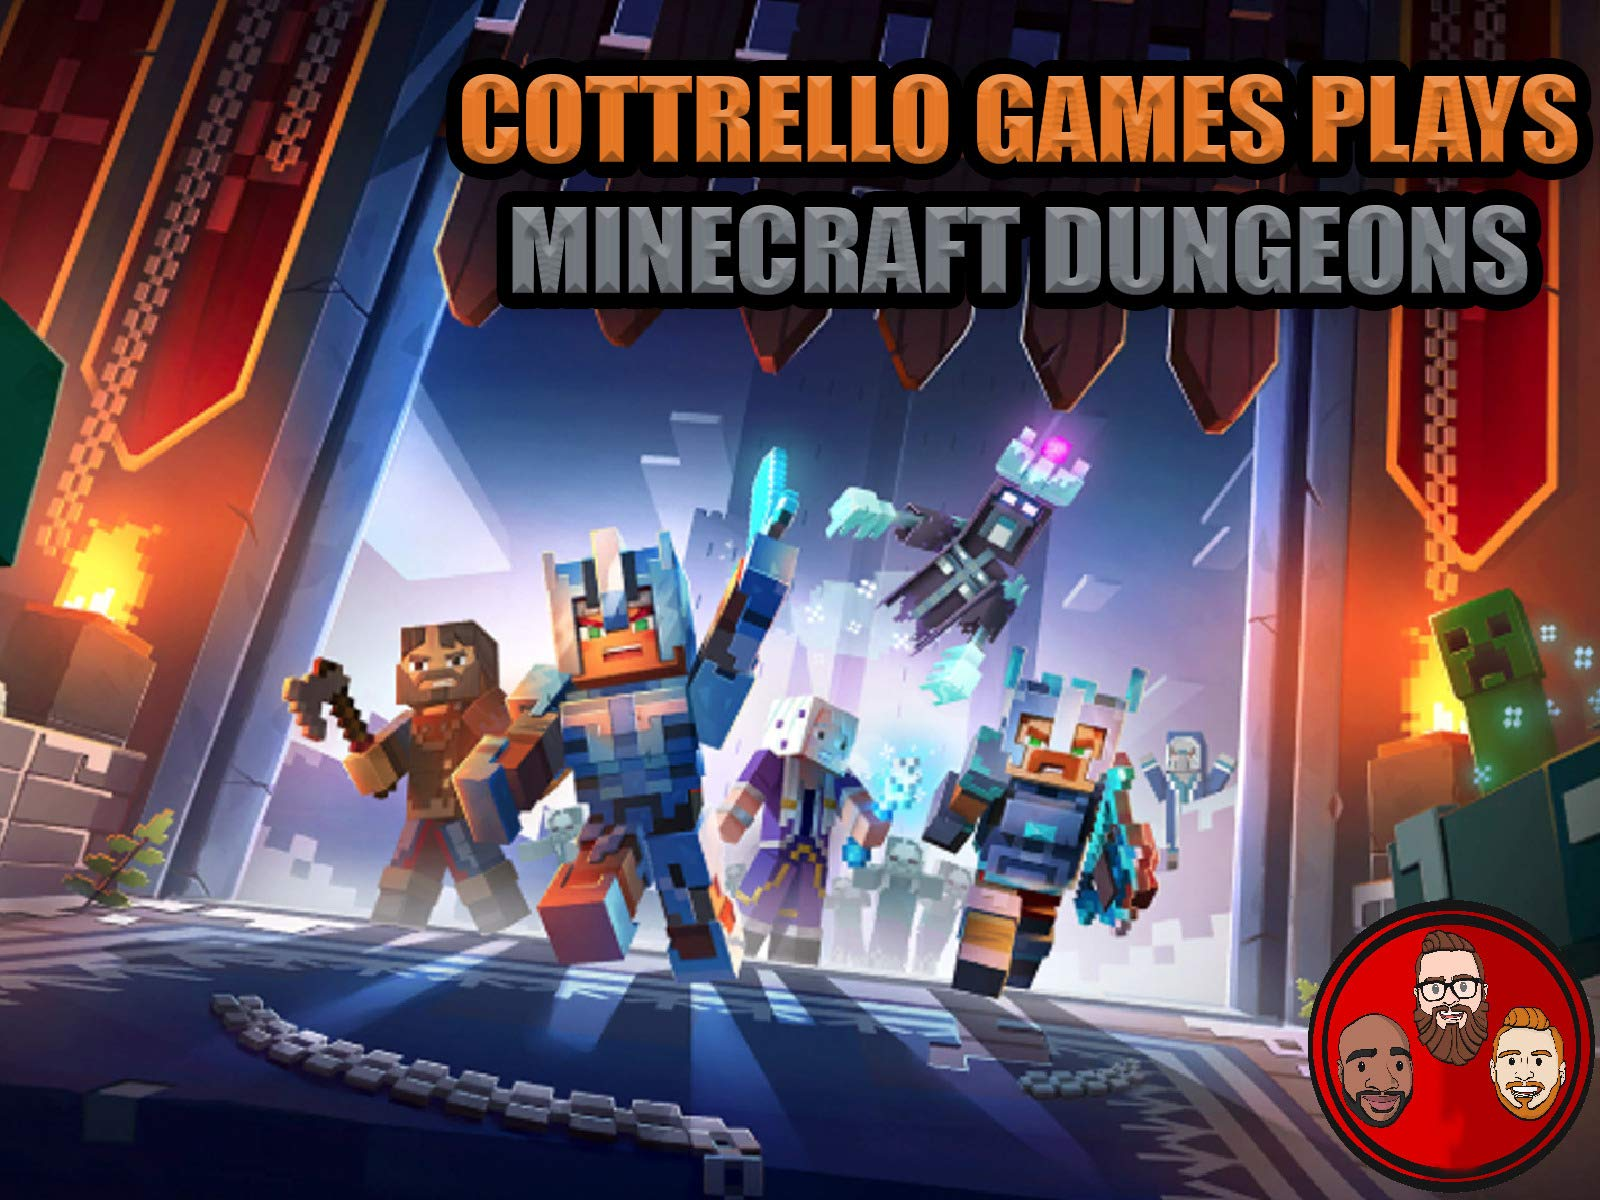 Clip: Minecraft Dungeons Playthrough with Cottrello Games